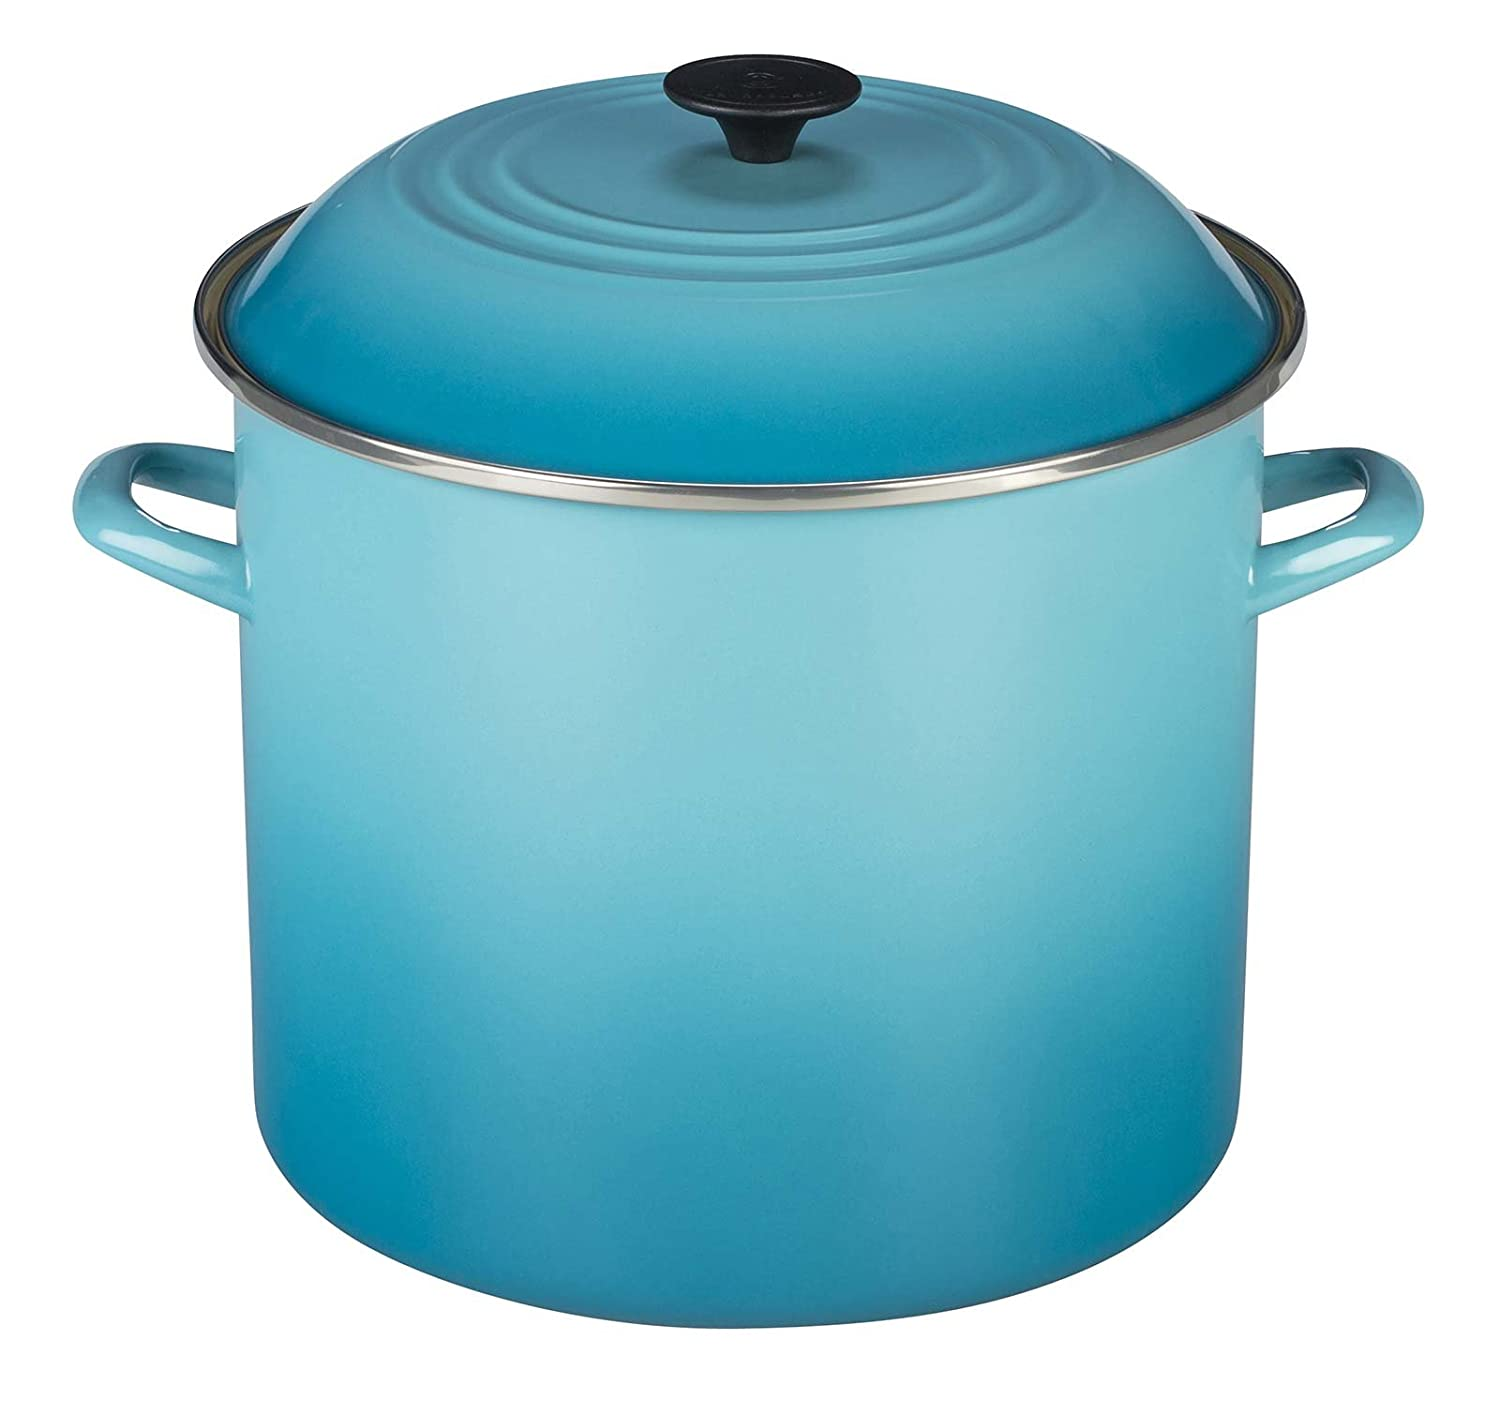 Le Creuset Enamel-on-Steel 8-Quart Covered Stockpot, Caribbean